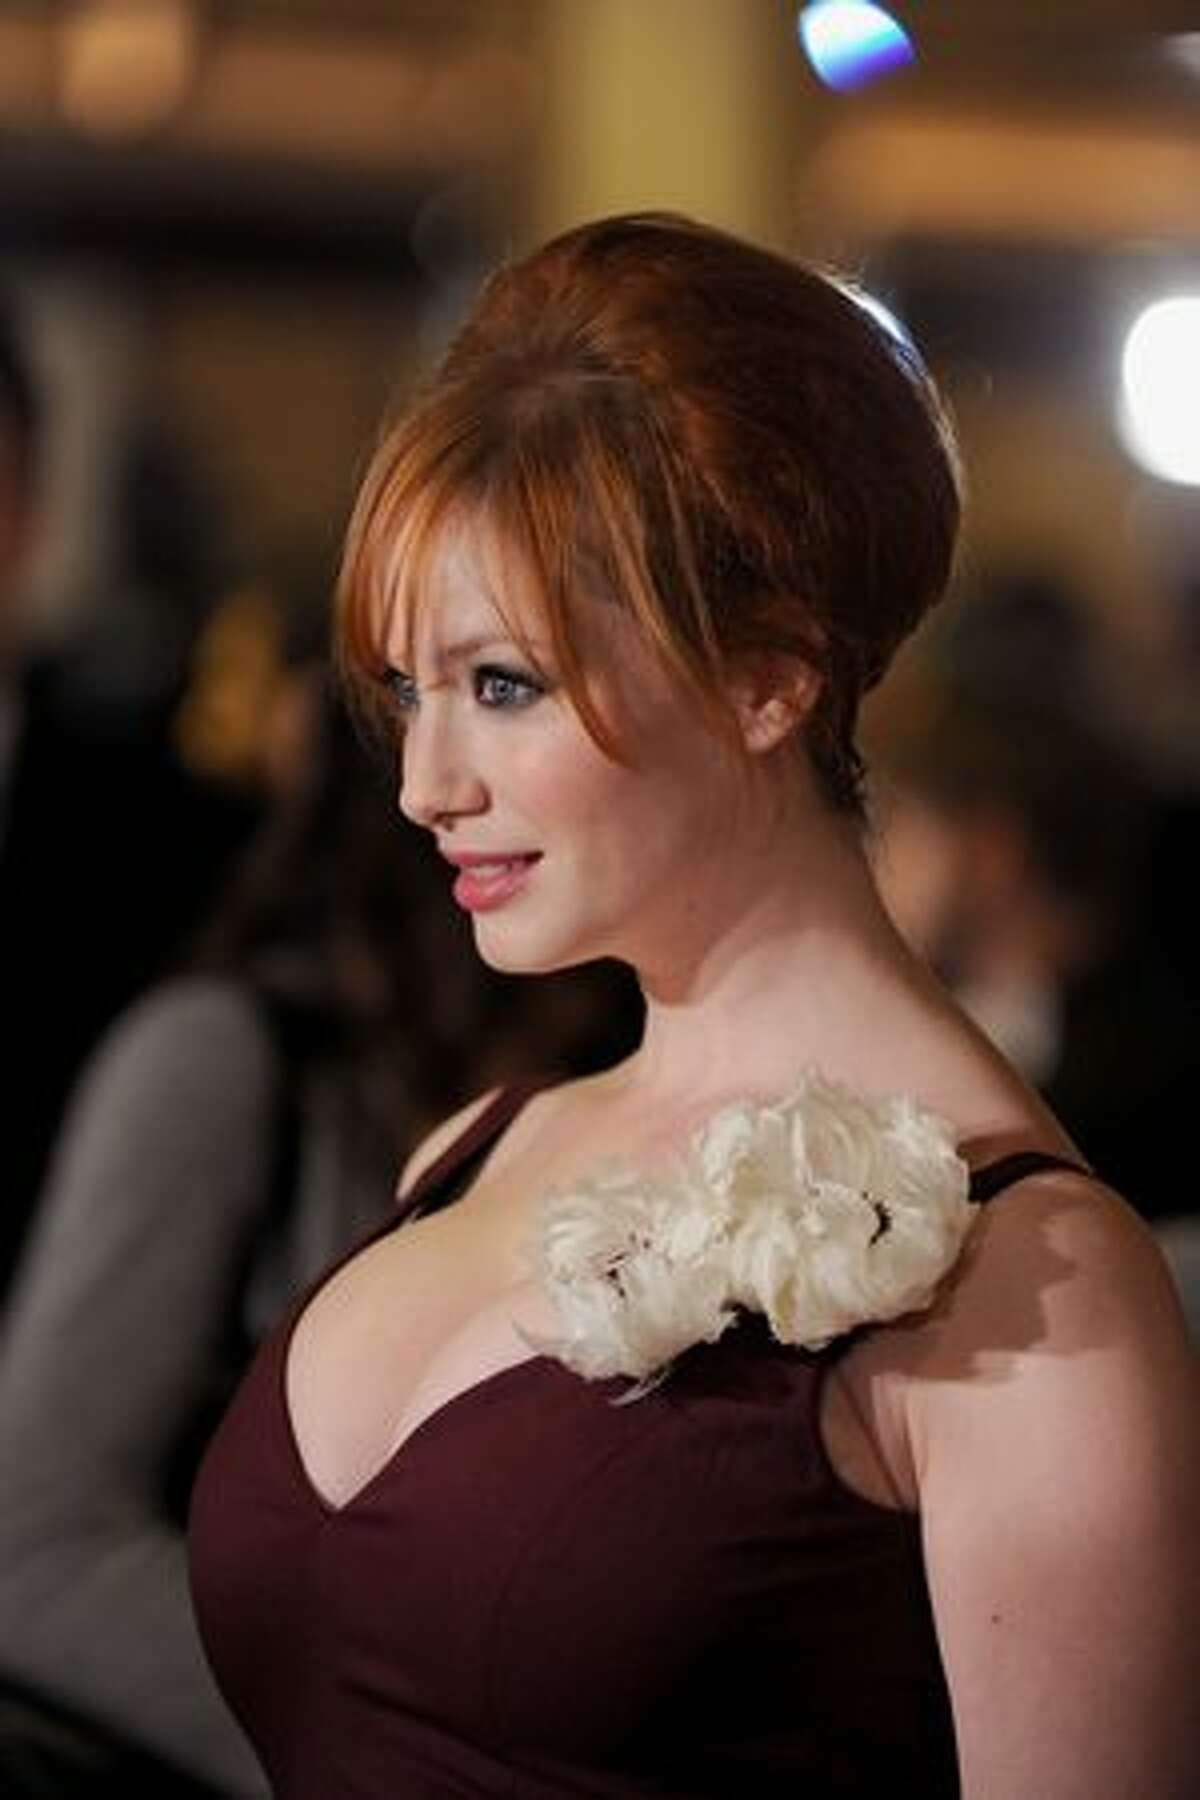 Actress Christina Hendricks arrives at the 62nd annual Directors Guild Of America Awards at the Hyatt Regency Century Plaza in Century City, Calif., on Saturday, Jan. 30, 2010.